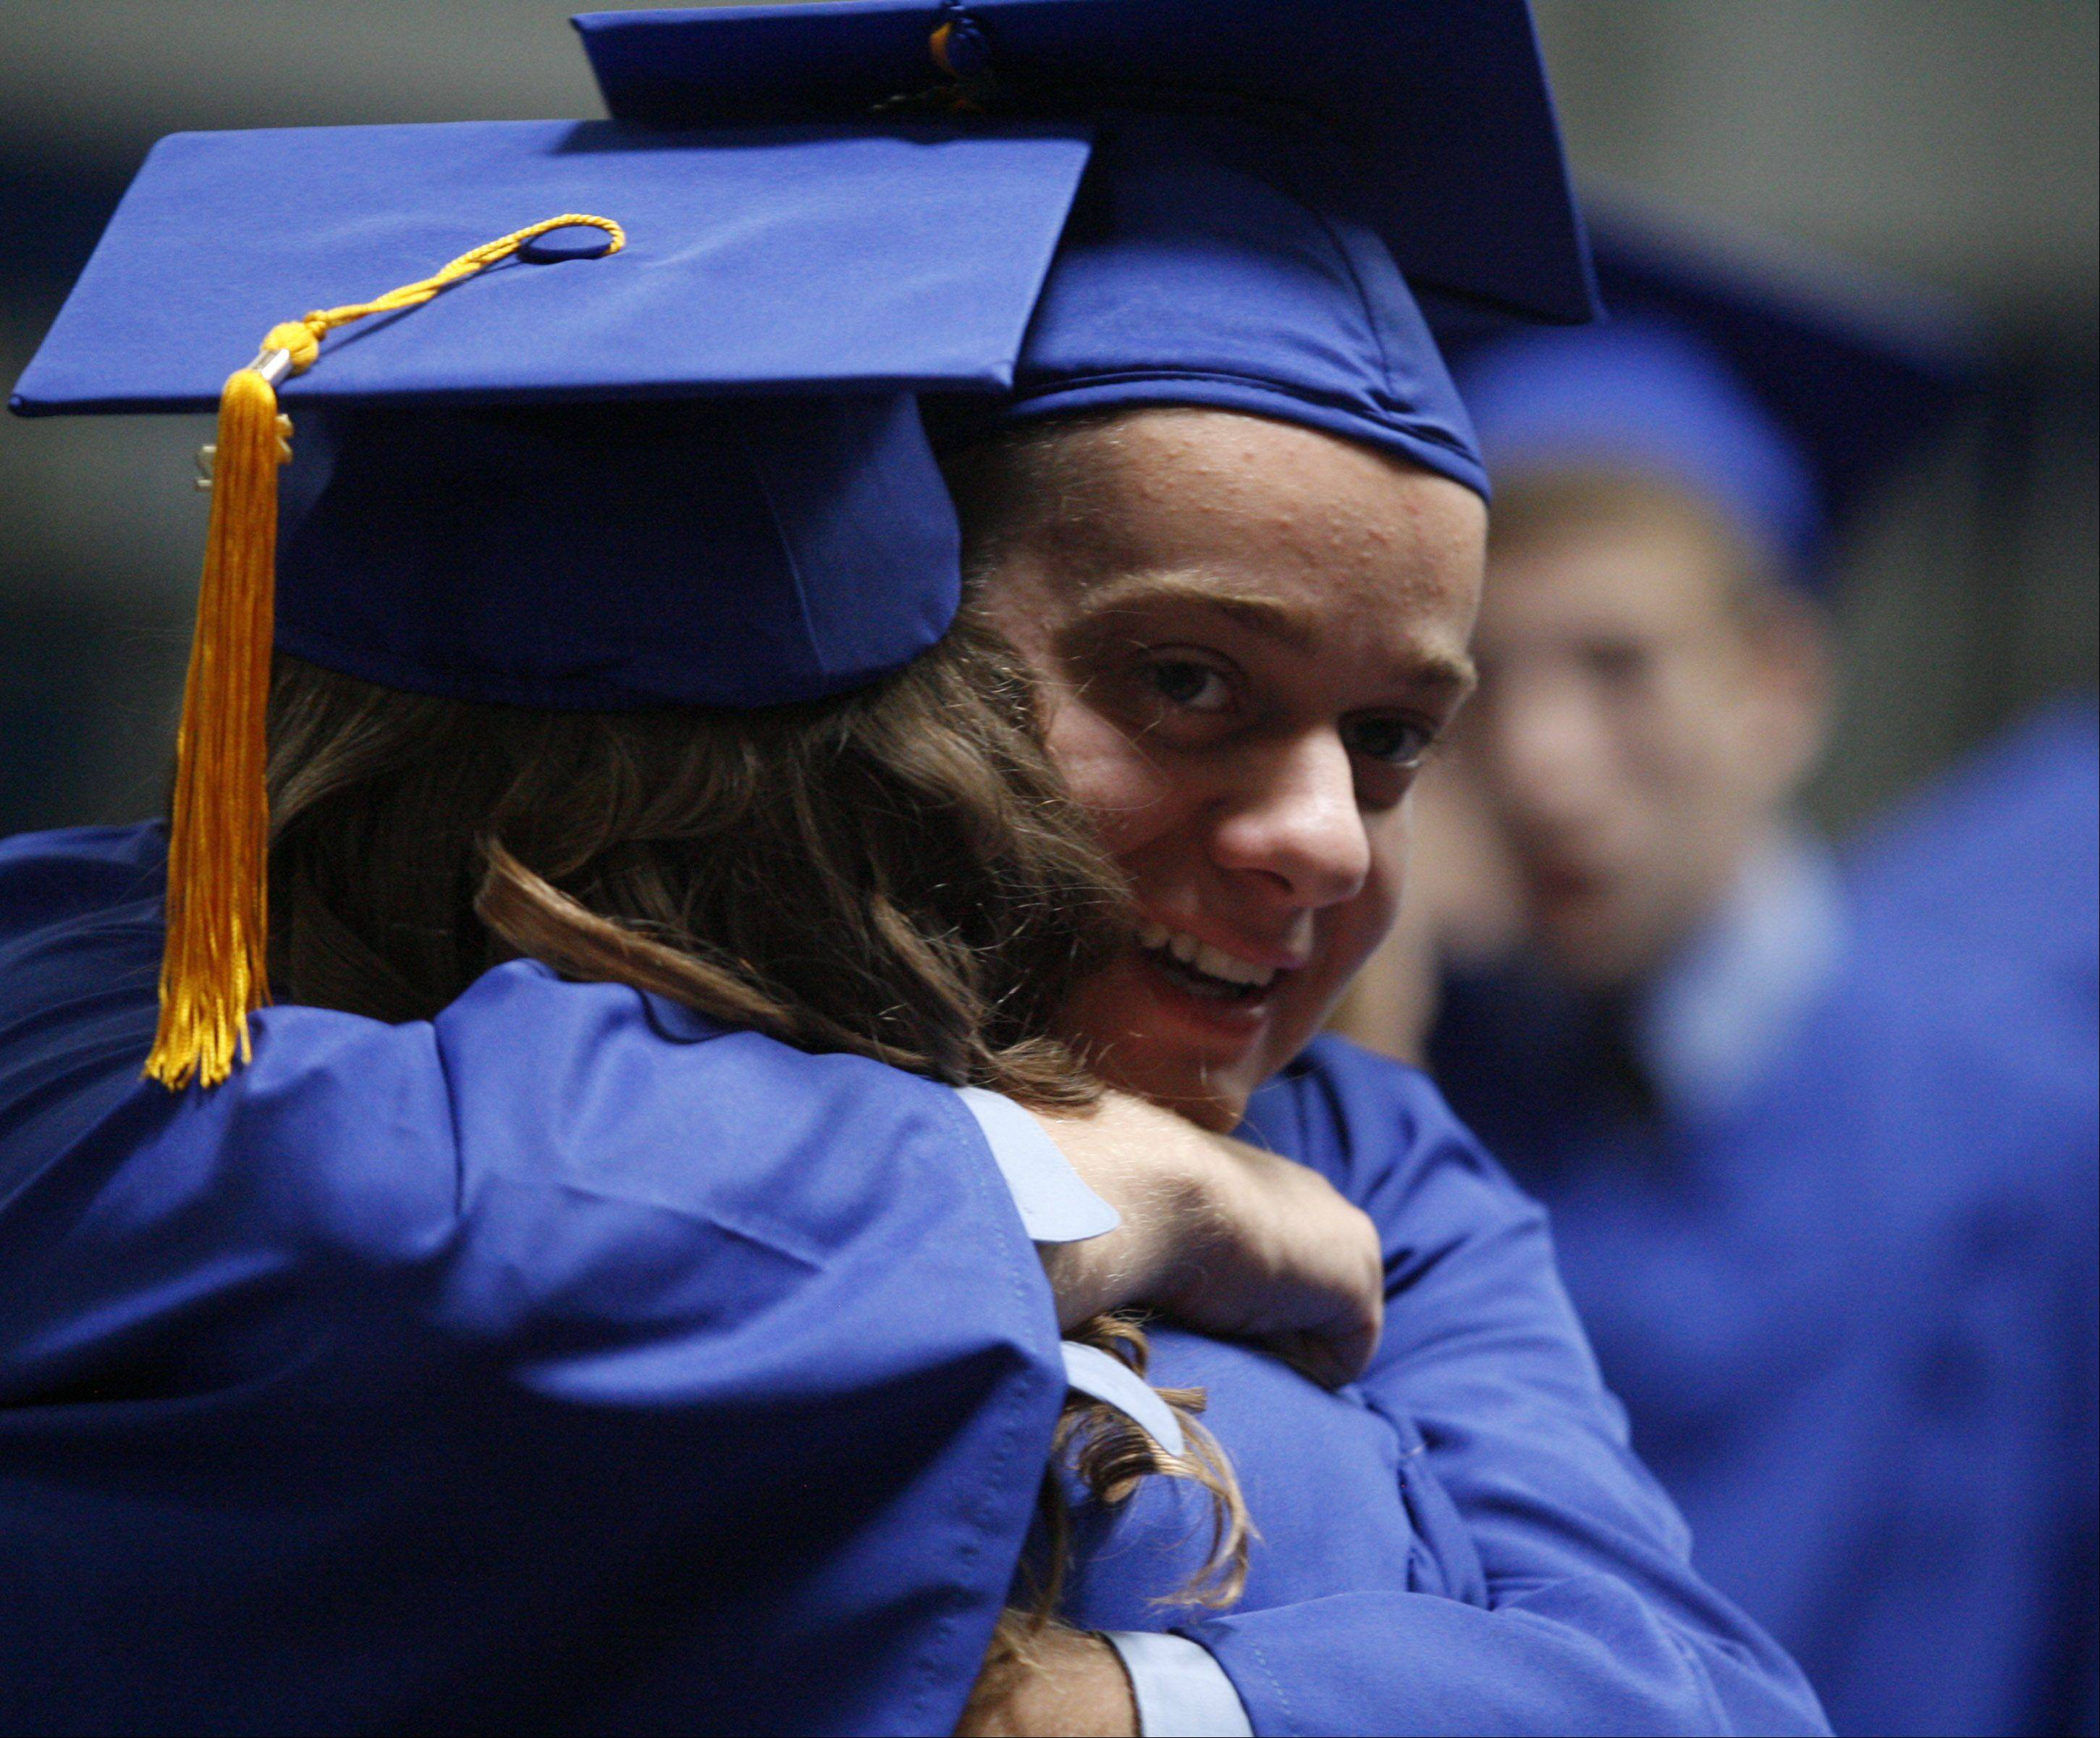 Images from the Wheeling High School graduation on Sunday, June 3rd in Wheeling.